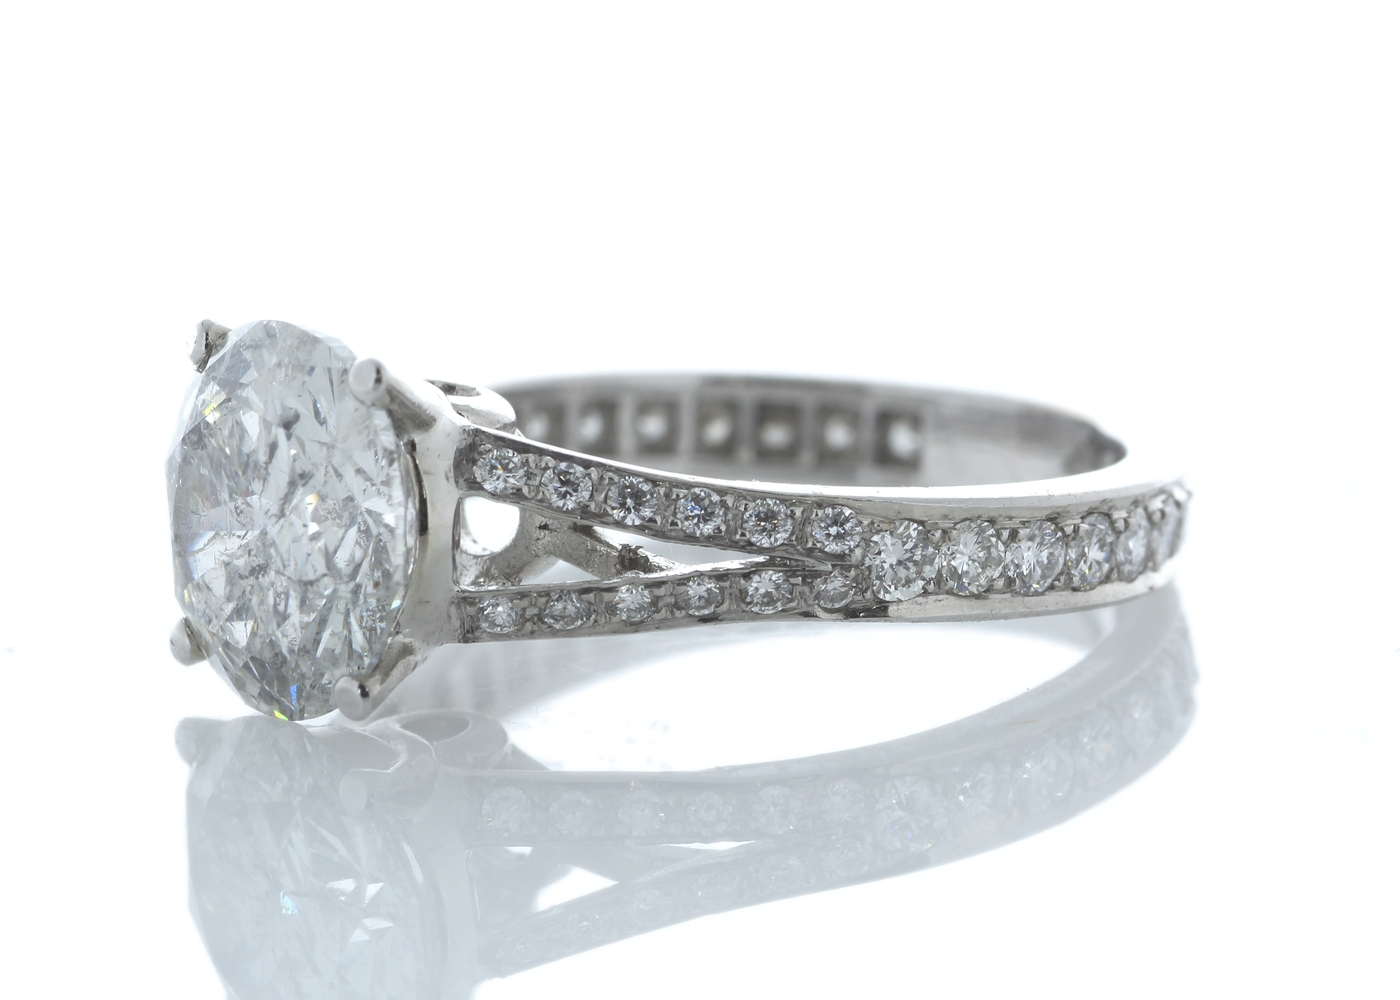 18ct White Gold Stone Set Shoulders Diamond Ring 3.67 Carats - Image 2 of 4